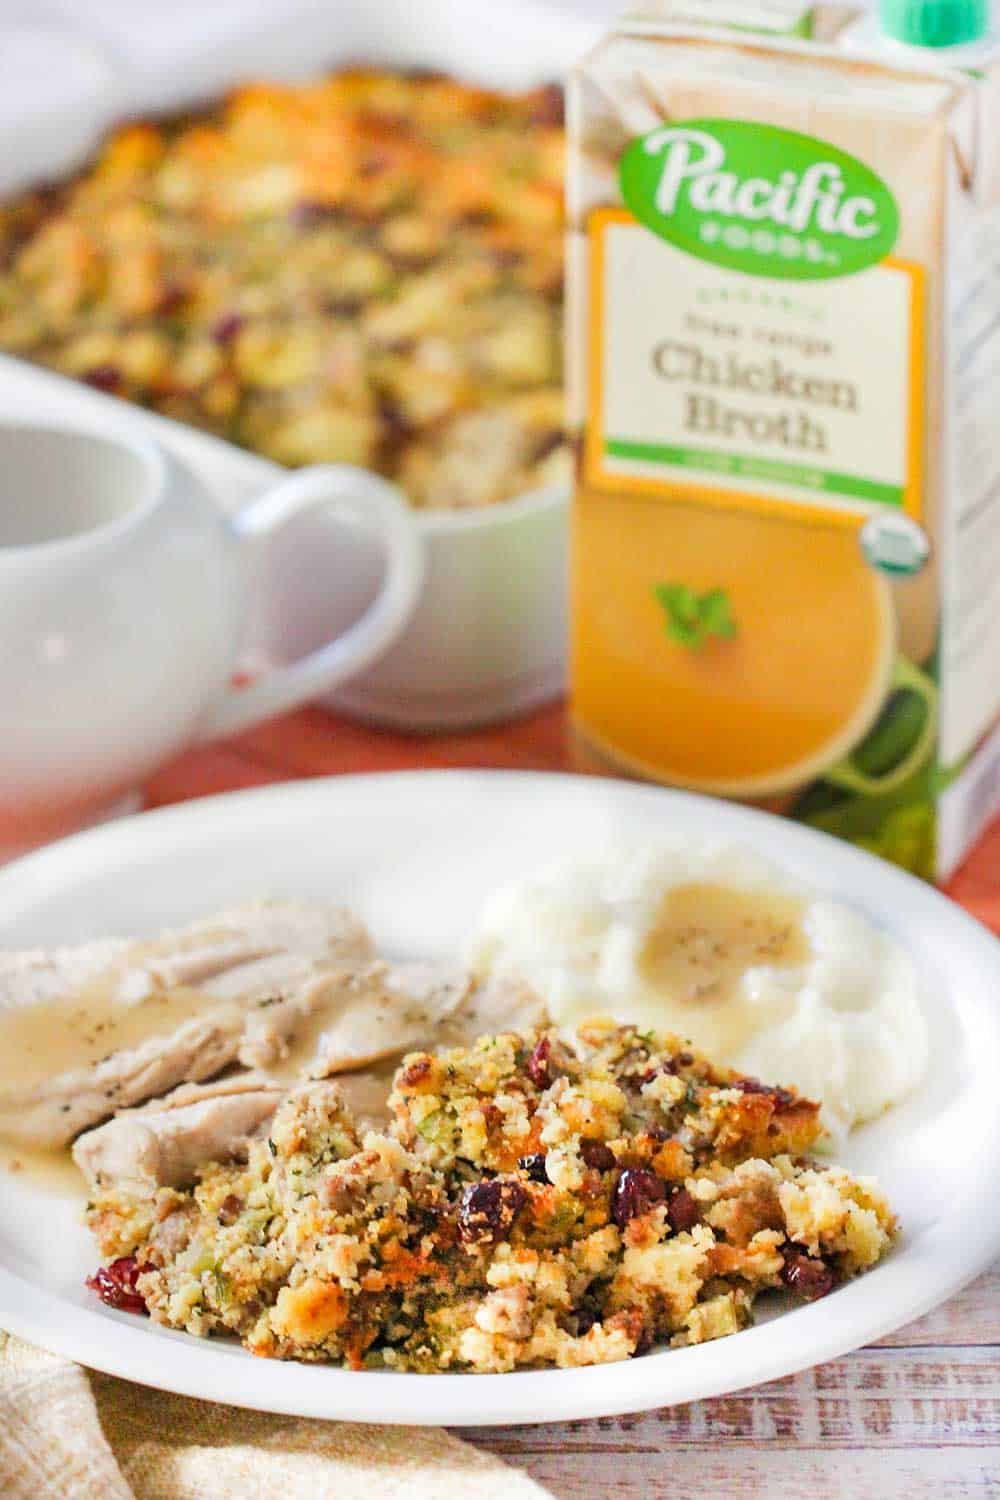 A plate full of roasted turkey, mashed potatoes and cornbread dressing with a box of broth next to it.